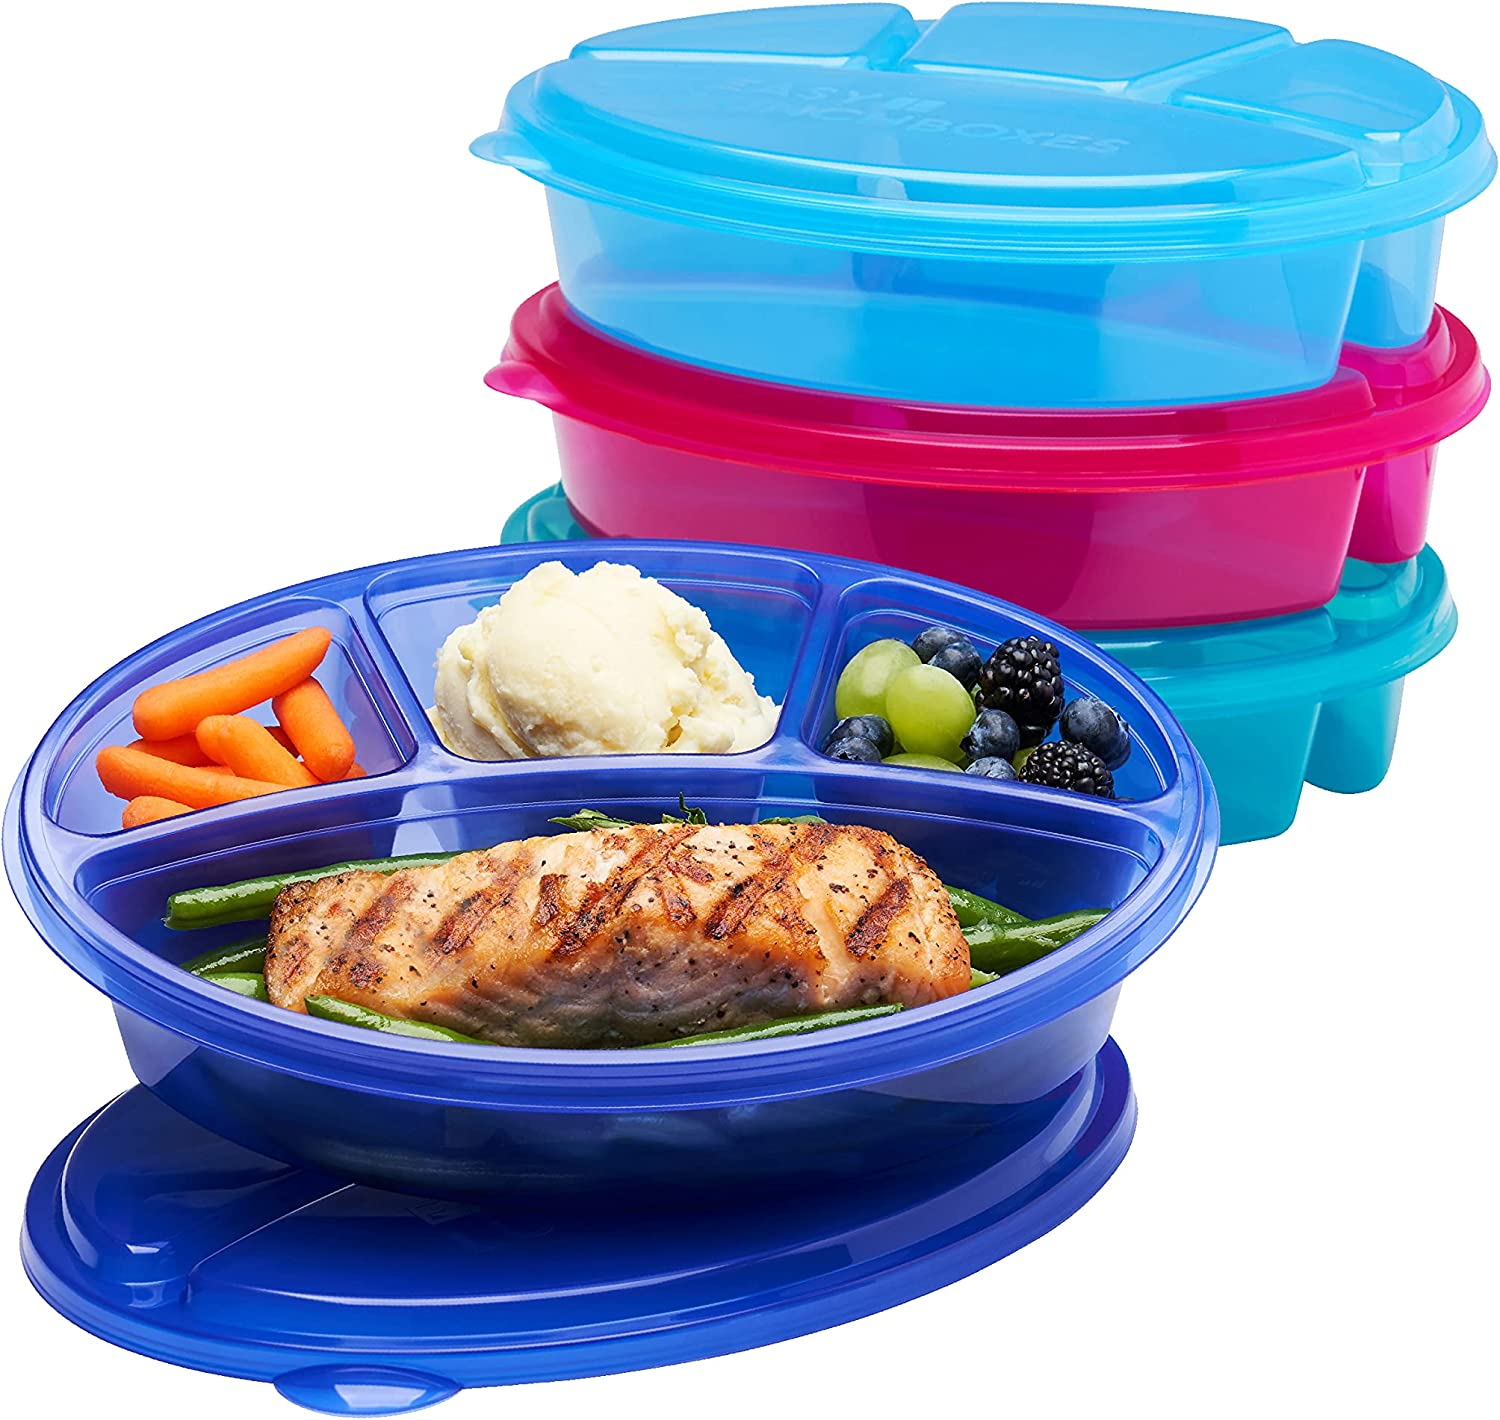 EasyLunchboxes - Oval Lunch Boxes - Reusable 4-Compartment Food Containers for Work, Travel and Meal Prep, Set of 4, (Jewel Brights)